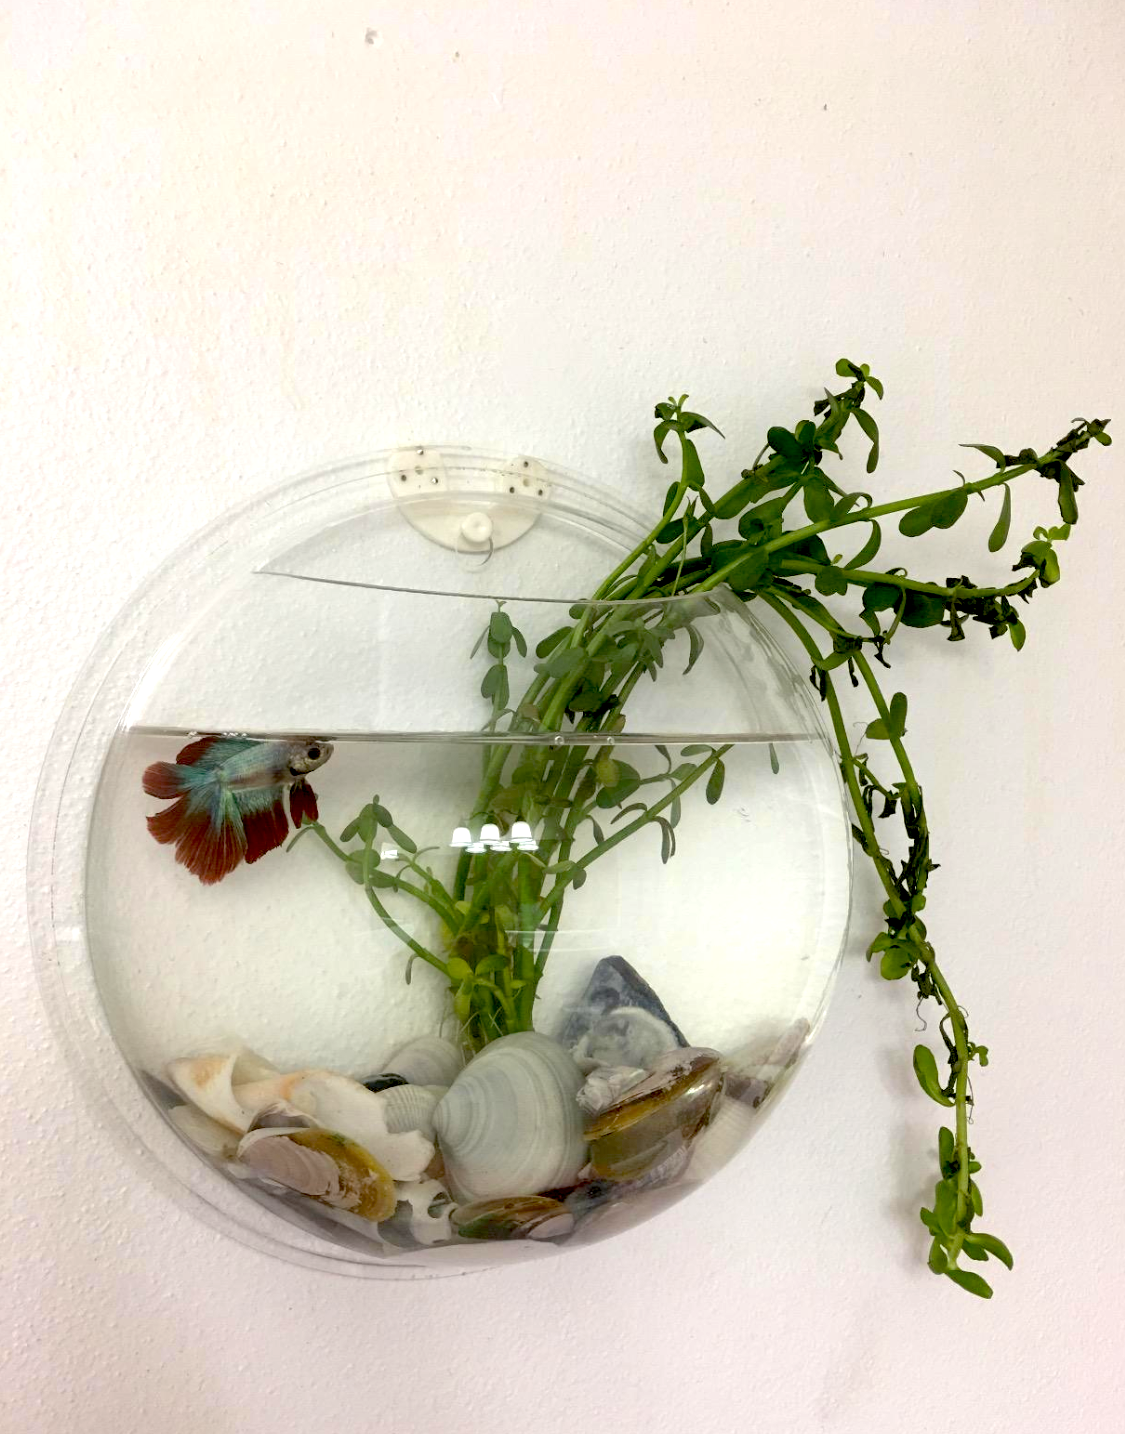 A mini aquarium shaped like a half-sphere. It's about the size of an average basketball and has a fish and water plant inside with seashells.